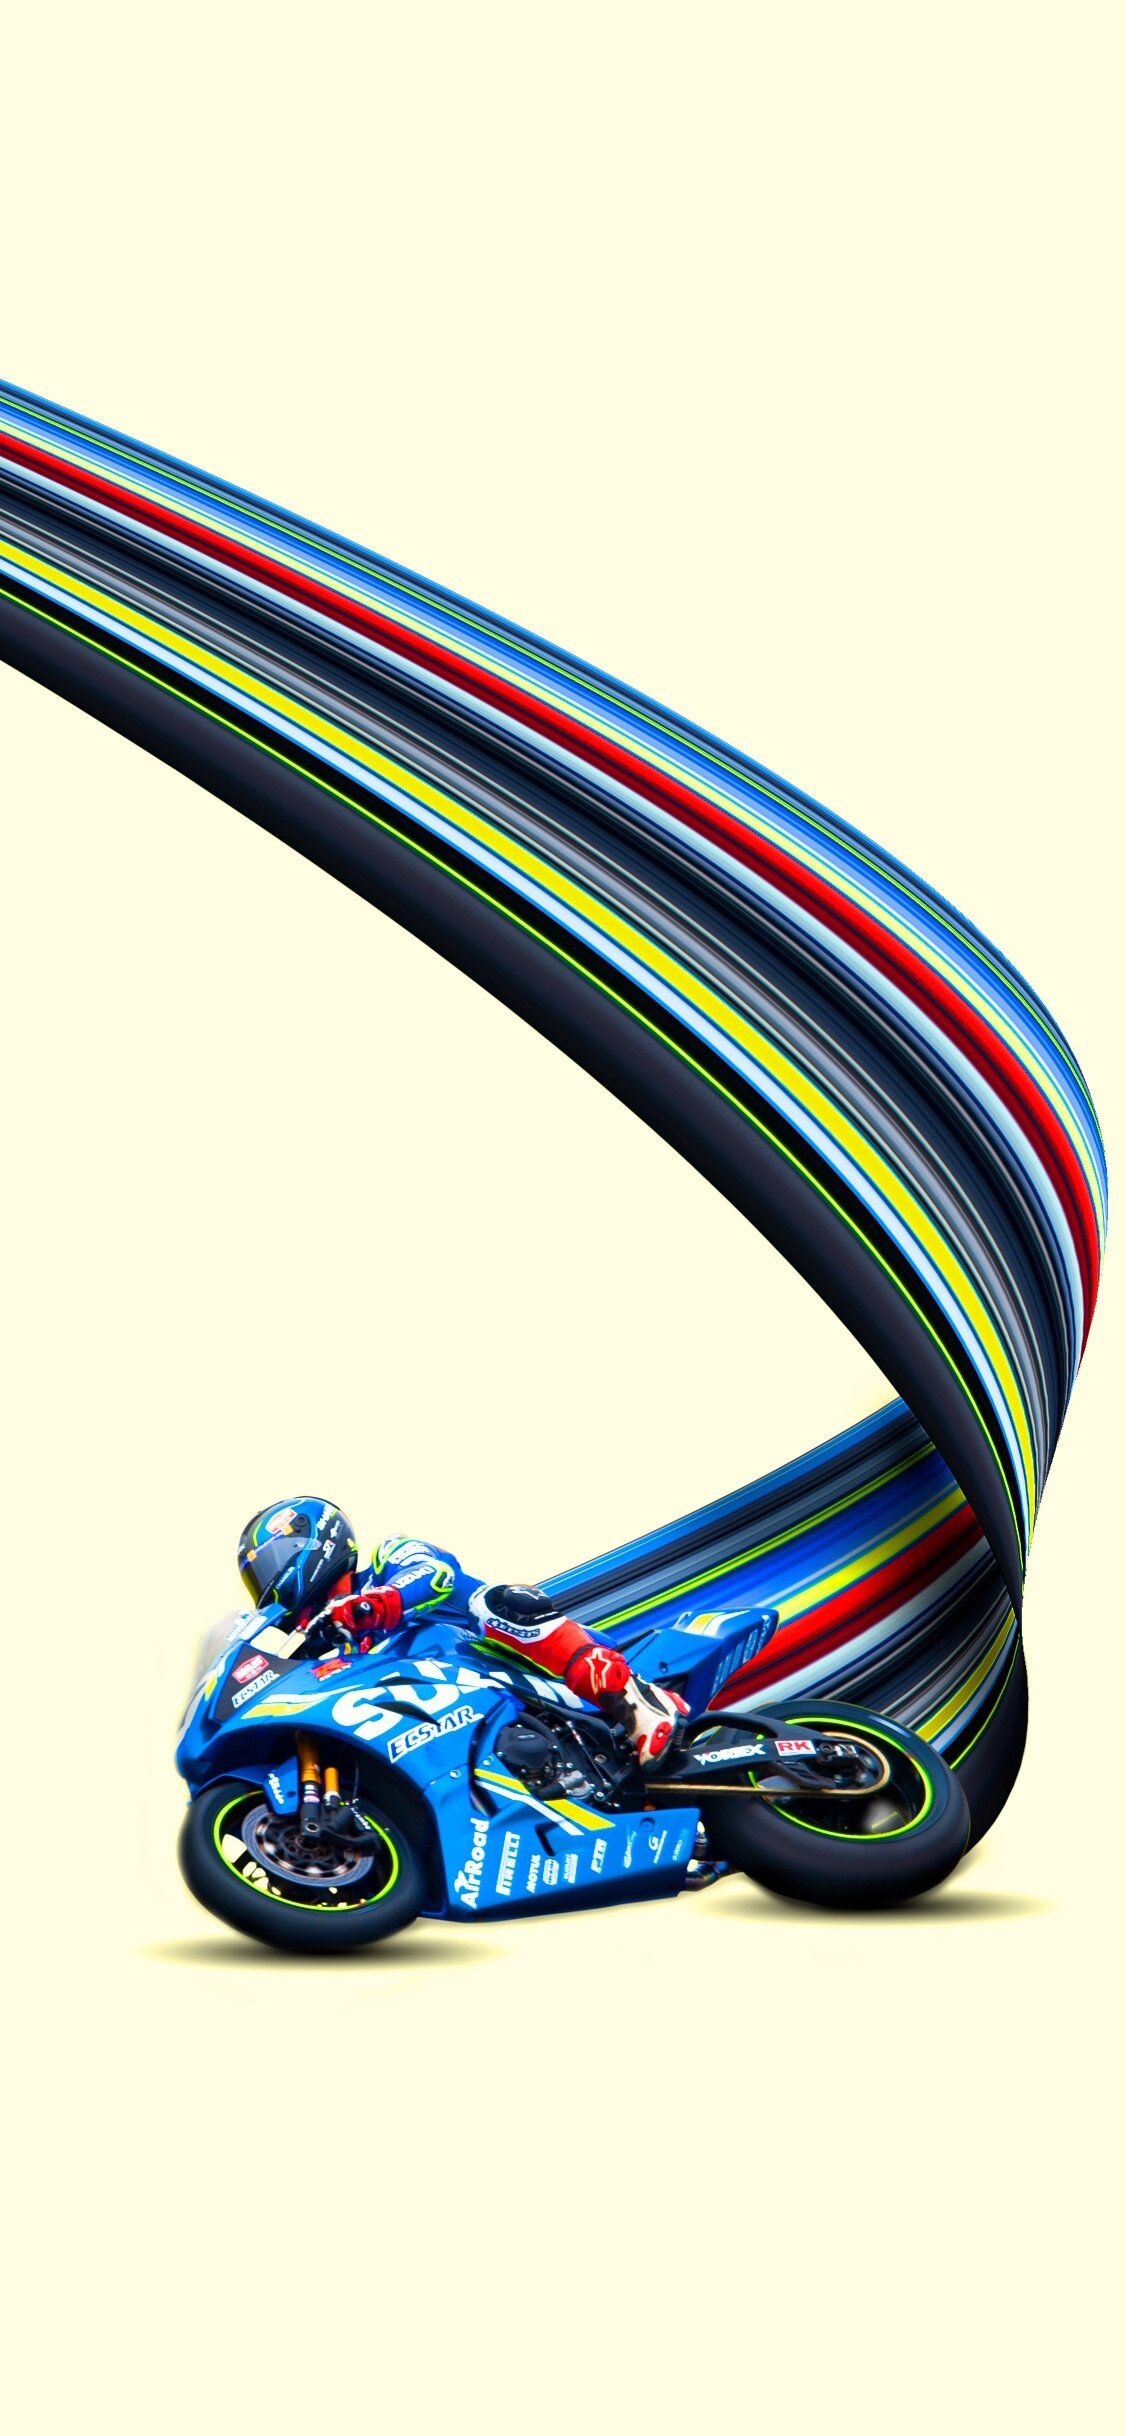 Blue Suzuki iPhone X Wallpaper.jpg